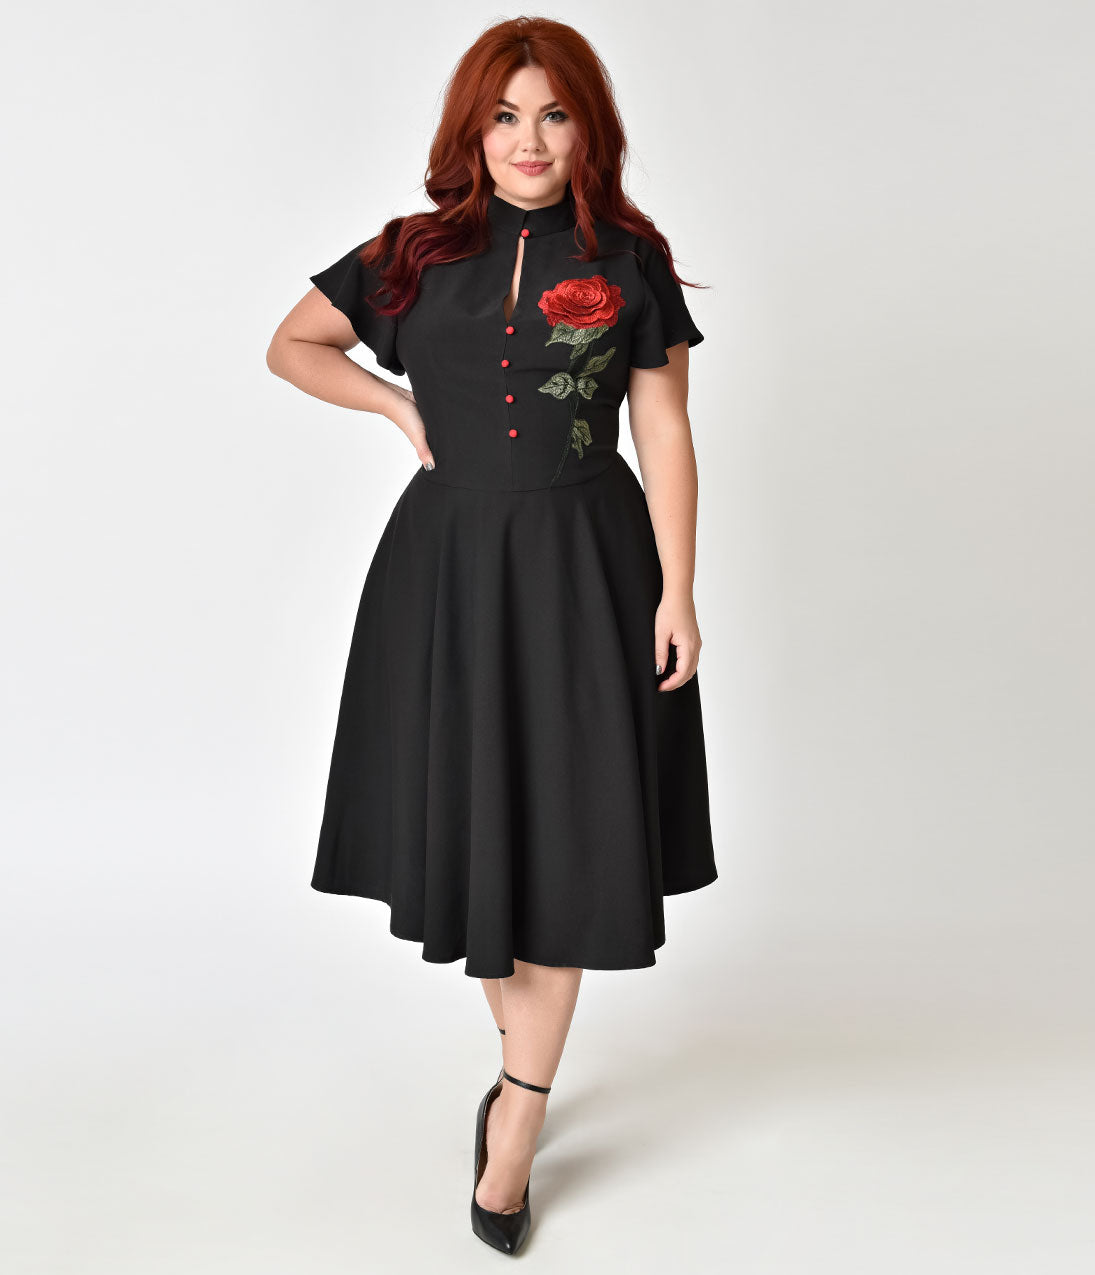 1950s Plus Size Dresses, Swing Dresses Unique Vintage Plus Size 1950S Black  Embroidered Red Rose Baltimore Swing Dress $98.00 AT vintagedancer.com